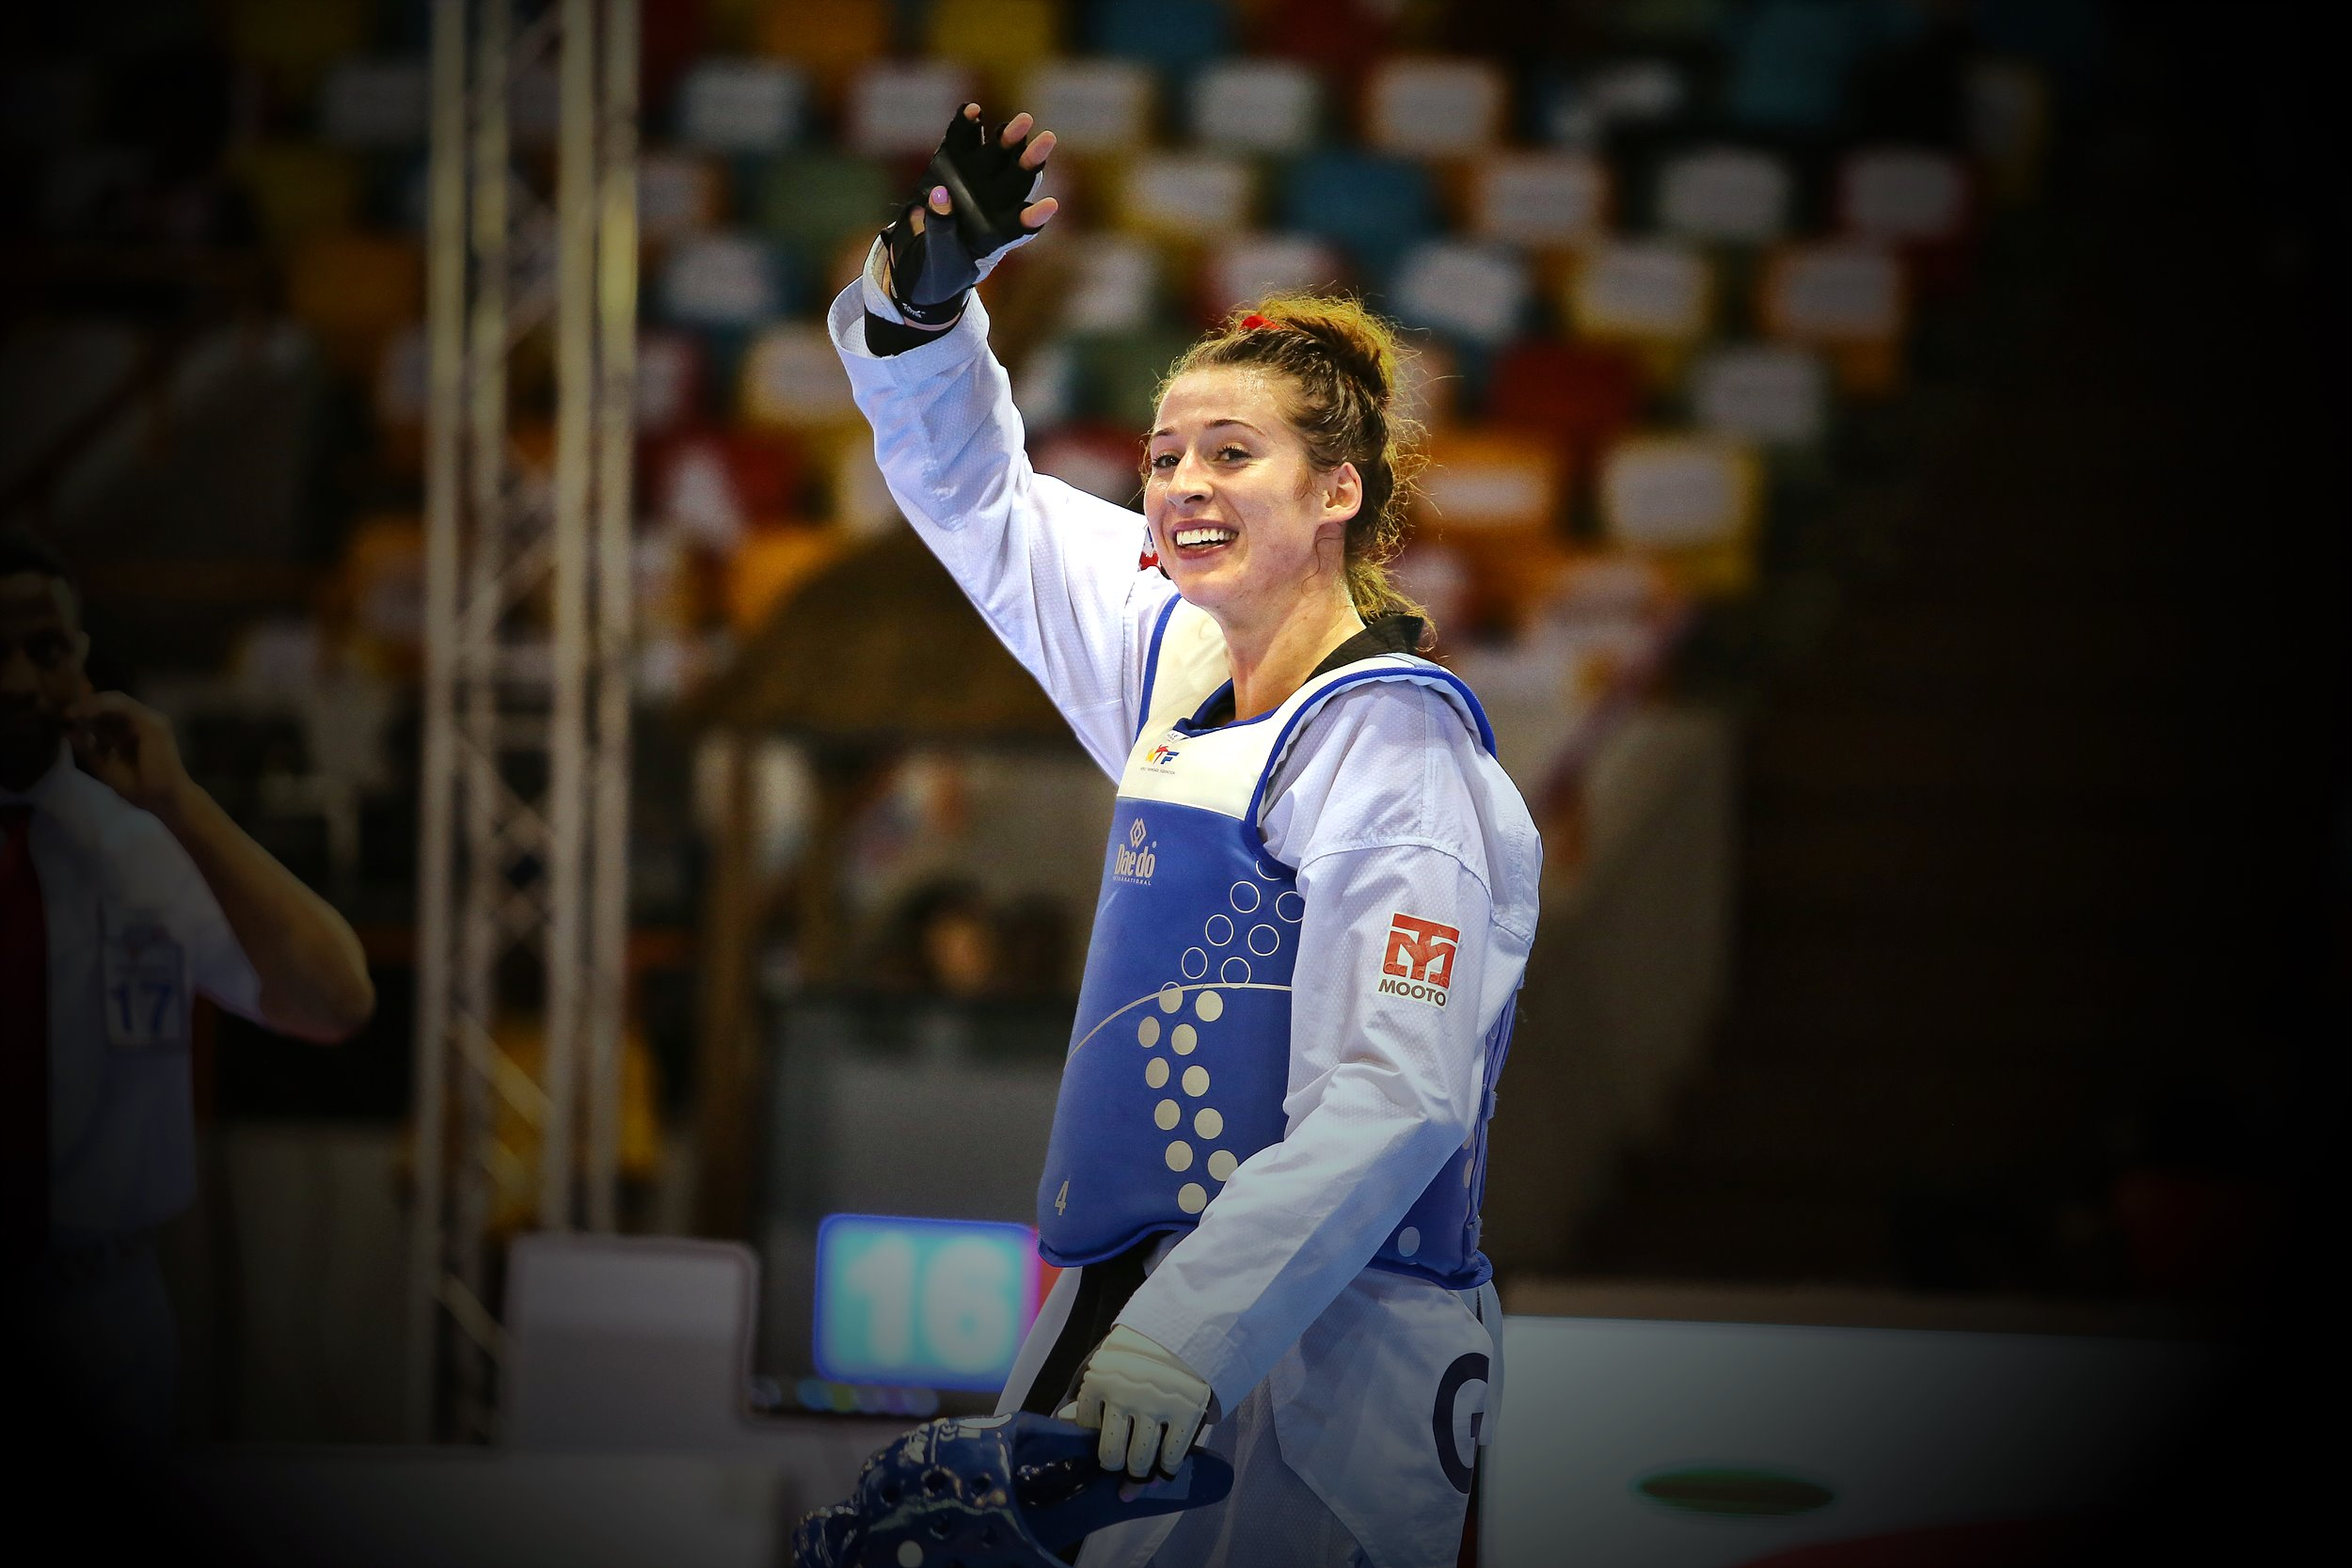 Bianca Walkden after winning the Abidjan 2017 World Taekwondo Grand Prix Final (4)